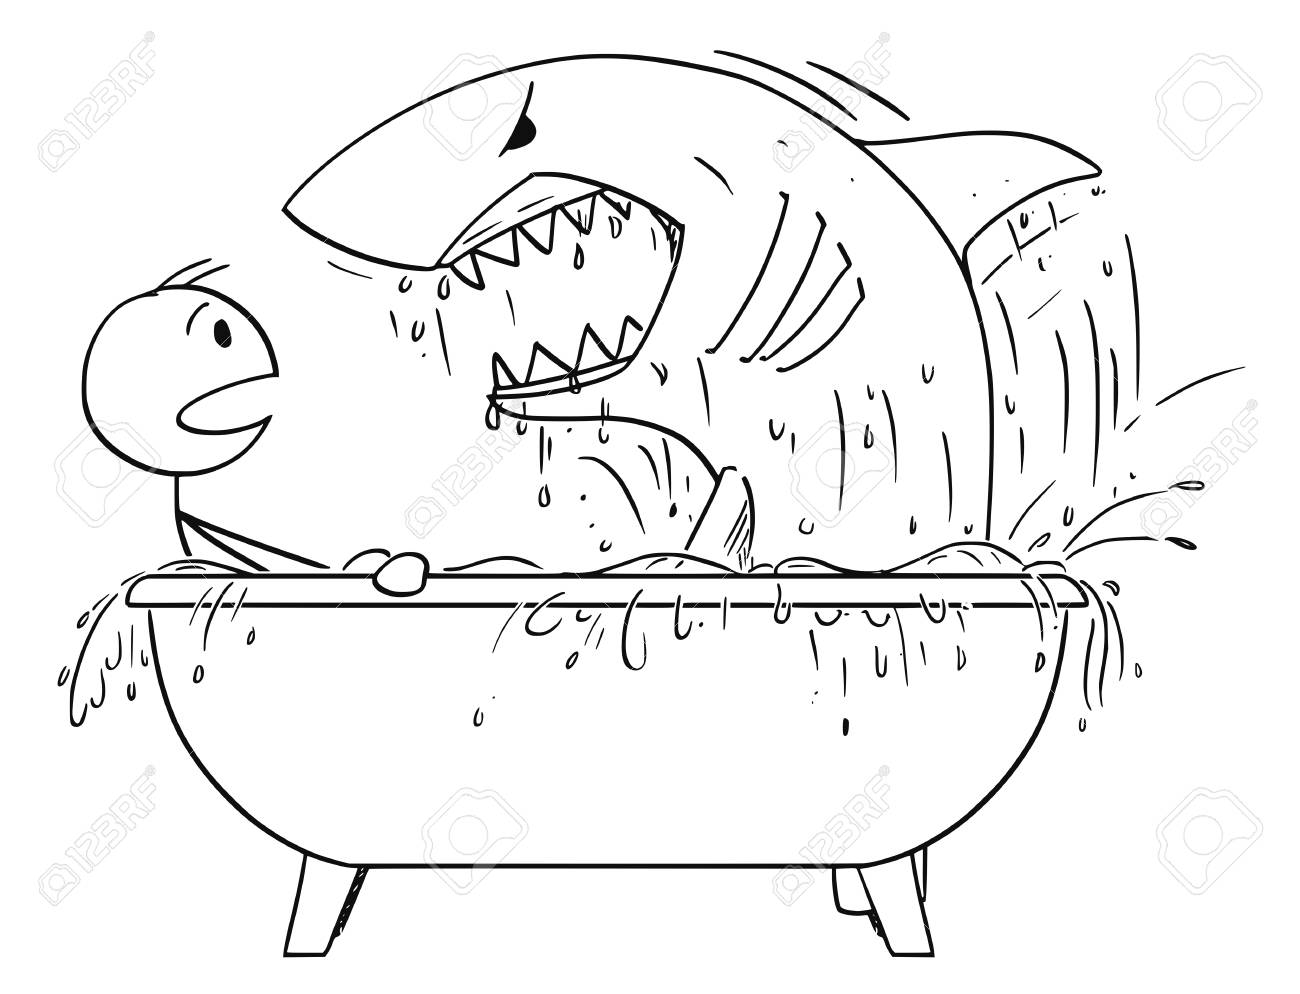 Cartoon Stick Man Drawing Conceptual Illustration Of Attacked By Shark In His Bathroom Bath